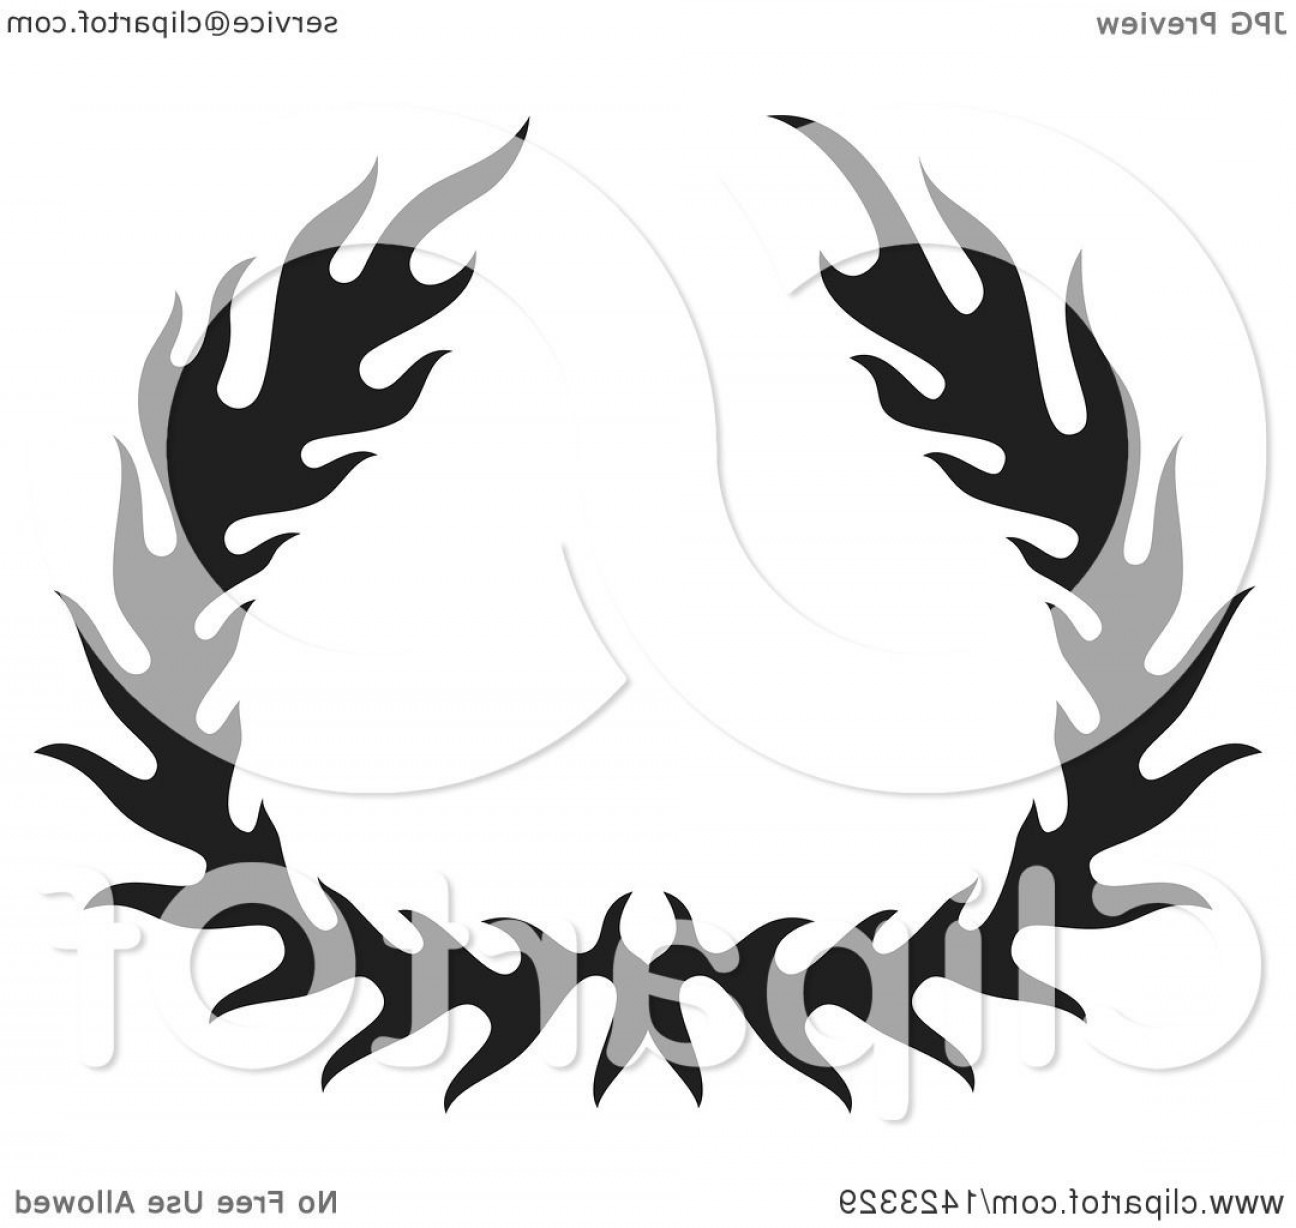 Fire Clip Art Vector: Black Silhouetted Fire Flame Wreath Design Element